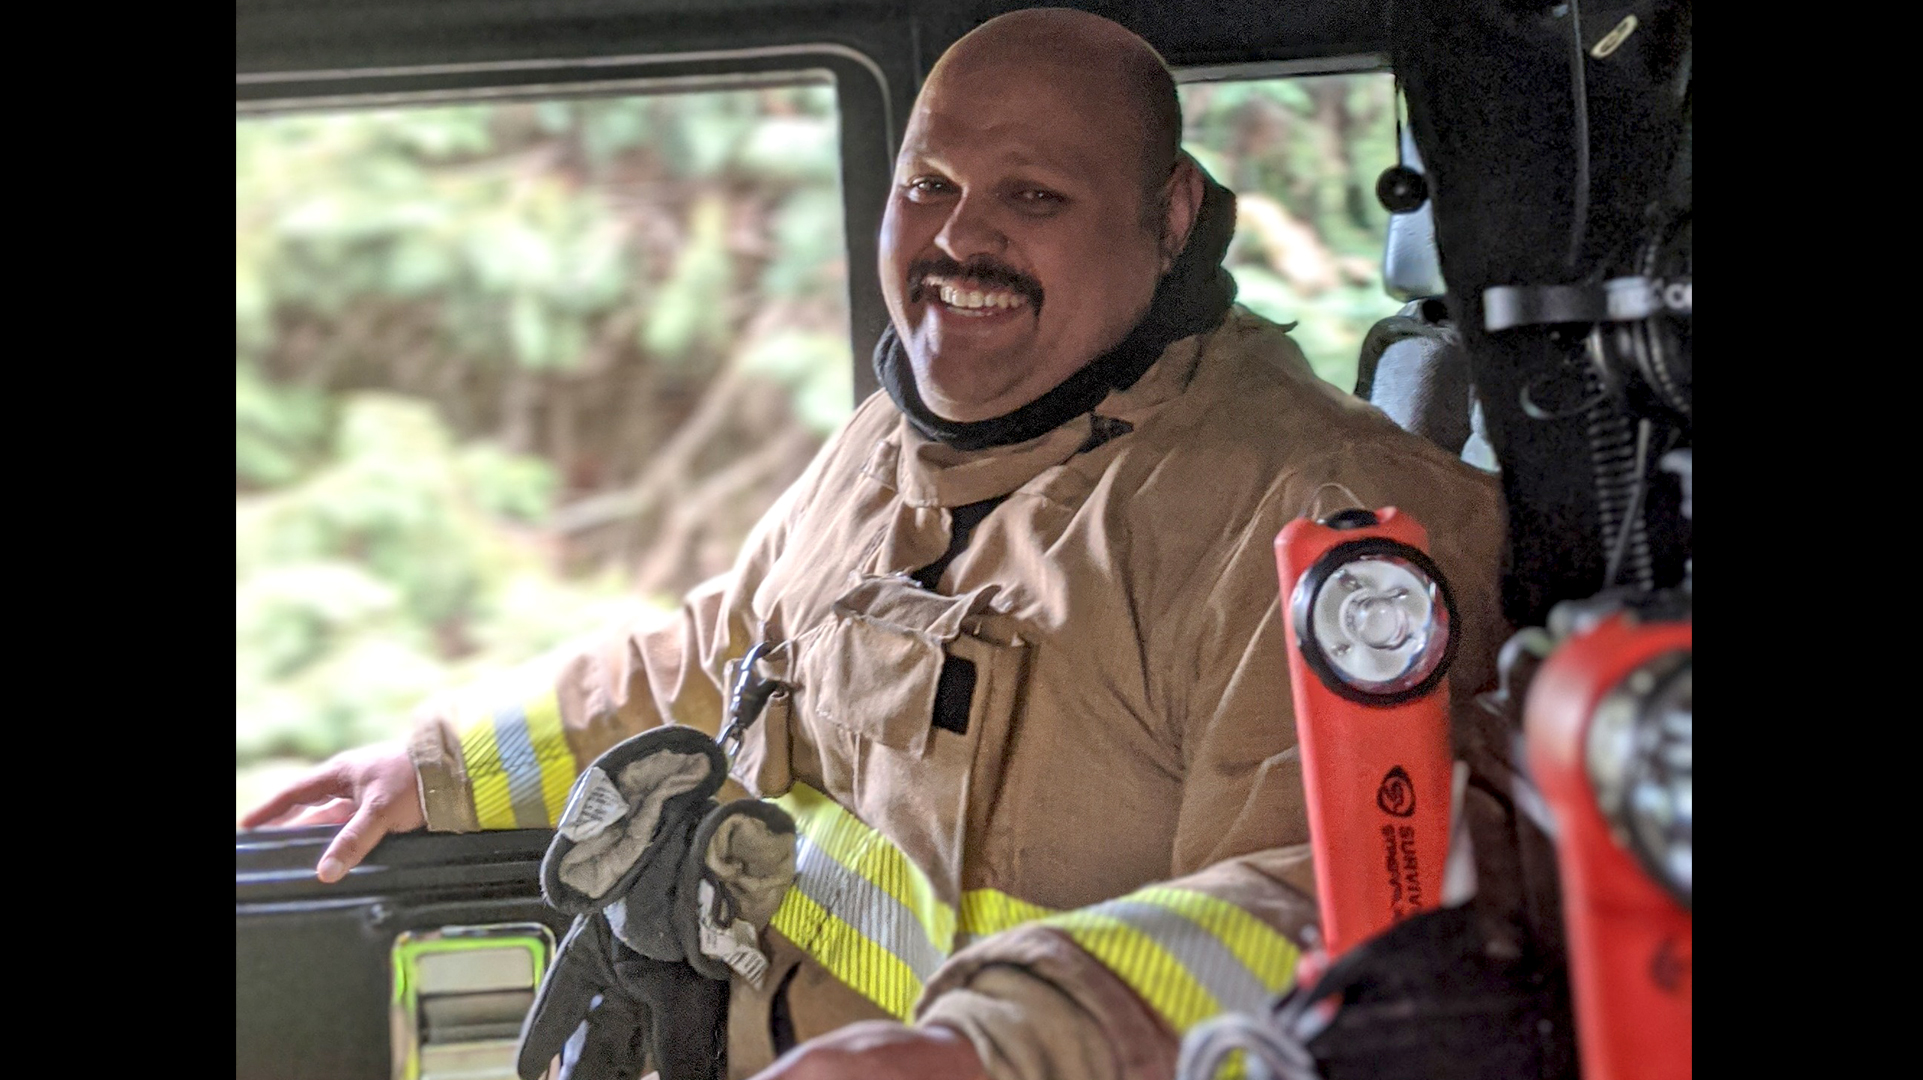 California Firefighter, Jacob Mual